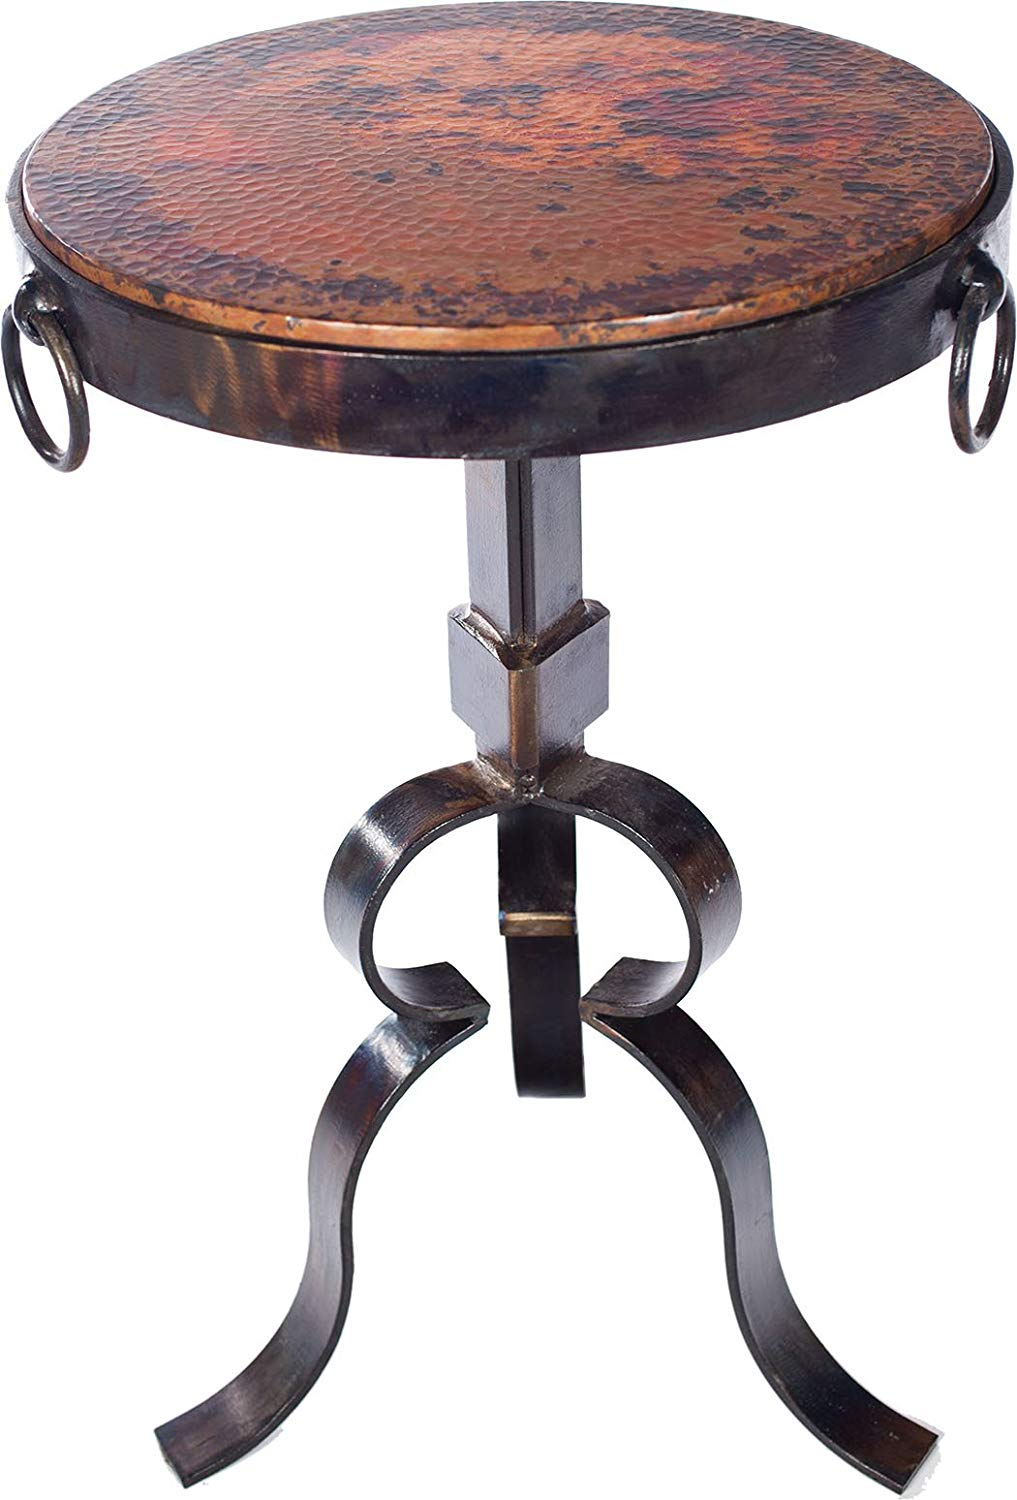 knox and harrison round iron occasional accent table gold hammered with copper top kitchen dining end door large outdoor home furniture wood coffee edmonton barnwood tall side